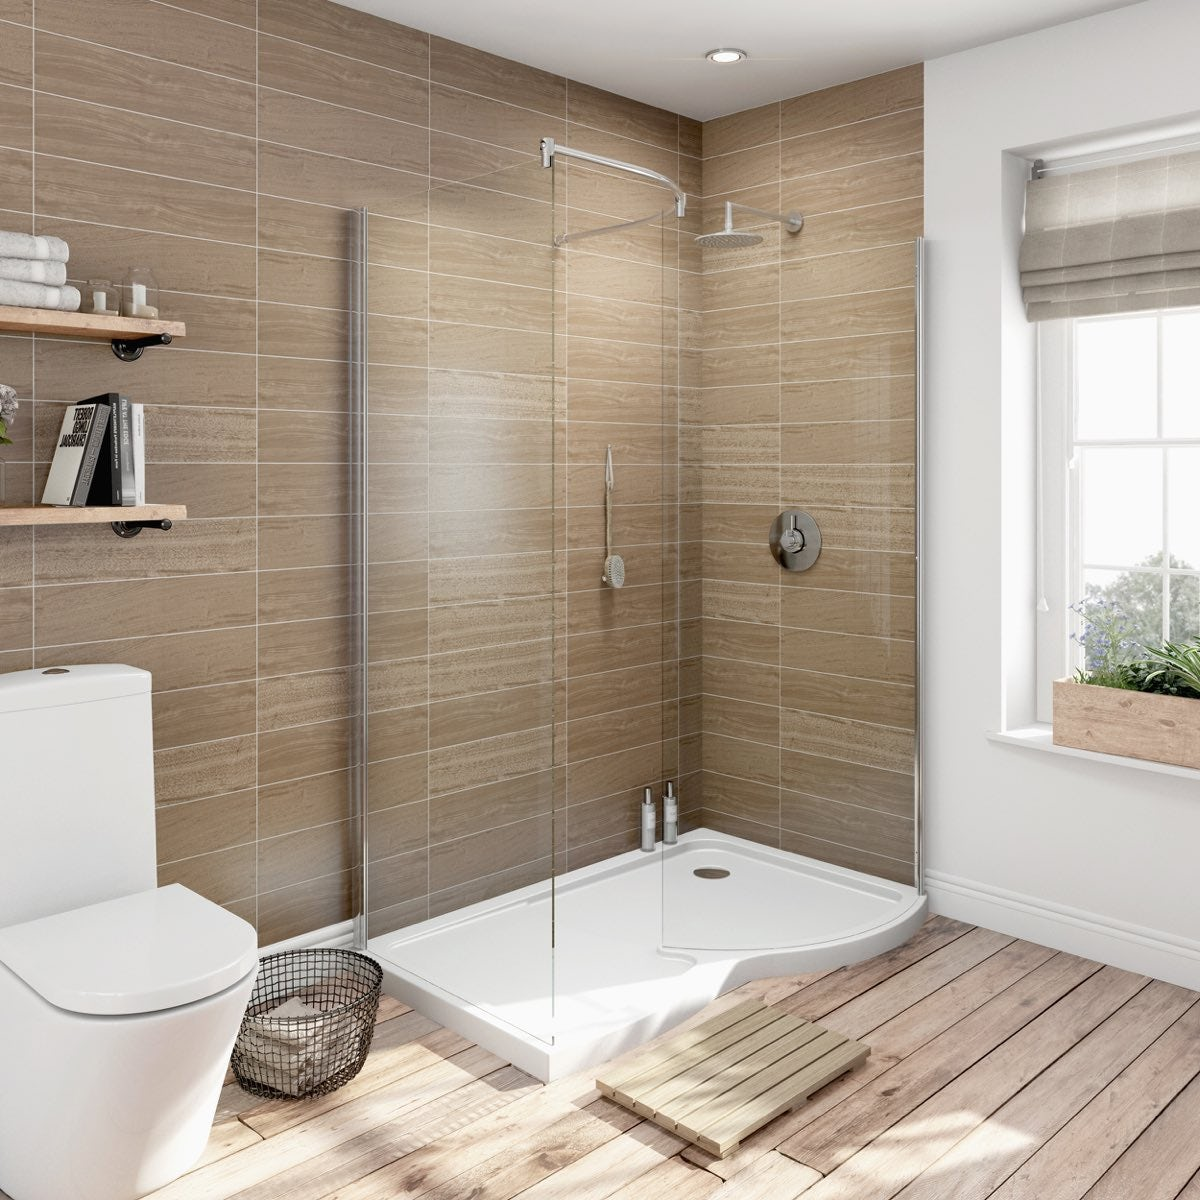 6mm curved rh walk in shower enclosure with tray 1400x900 - Salle de bain noir et beige ...